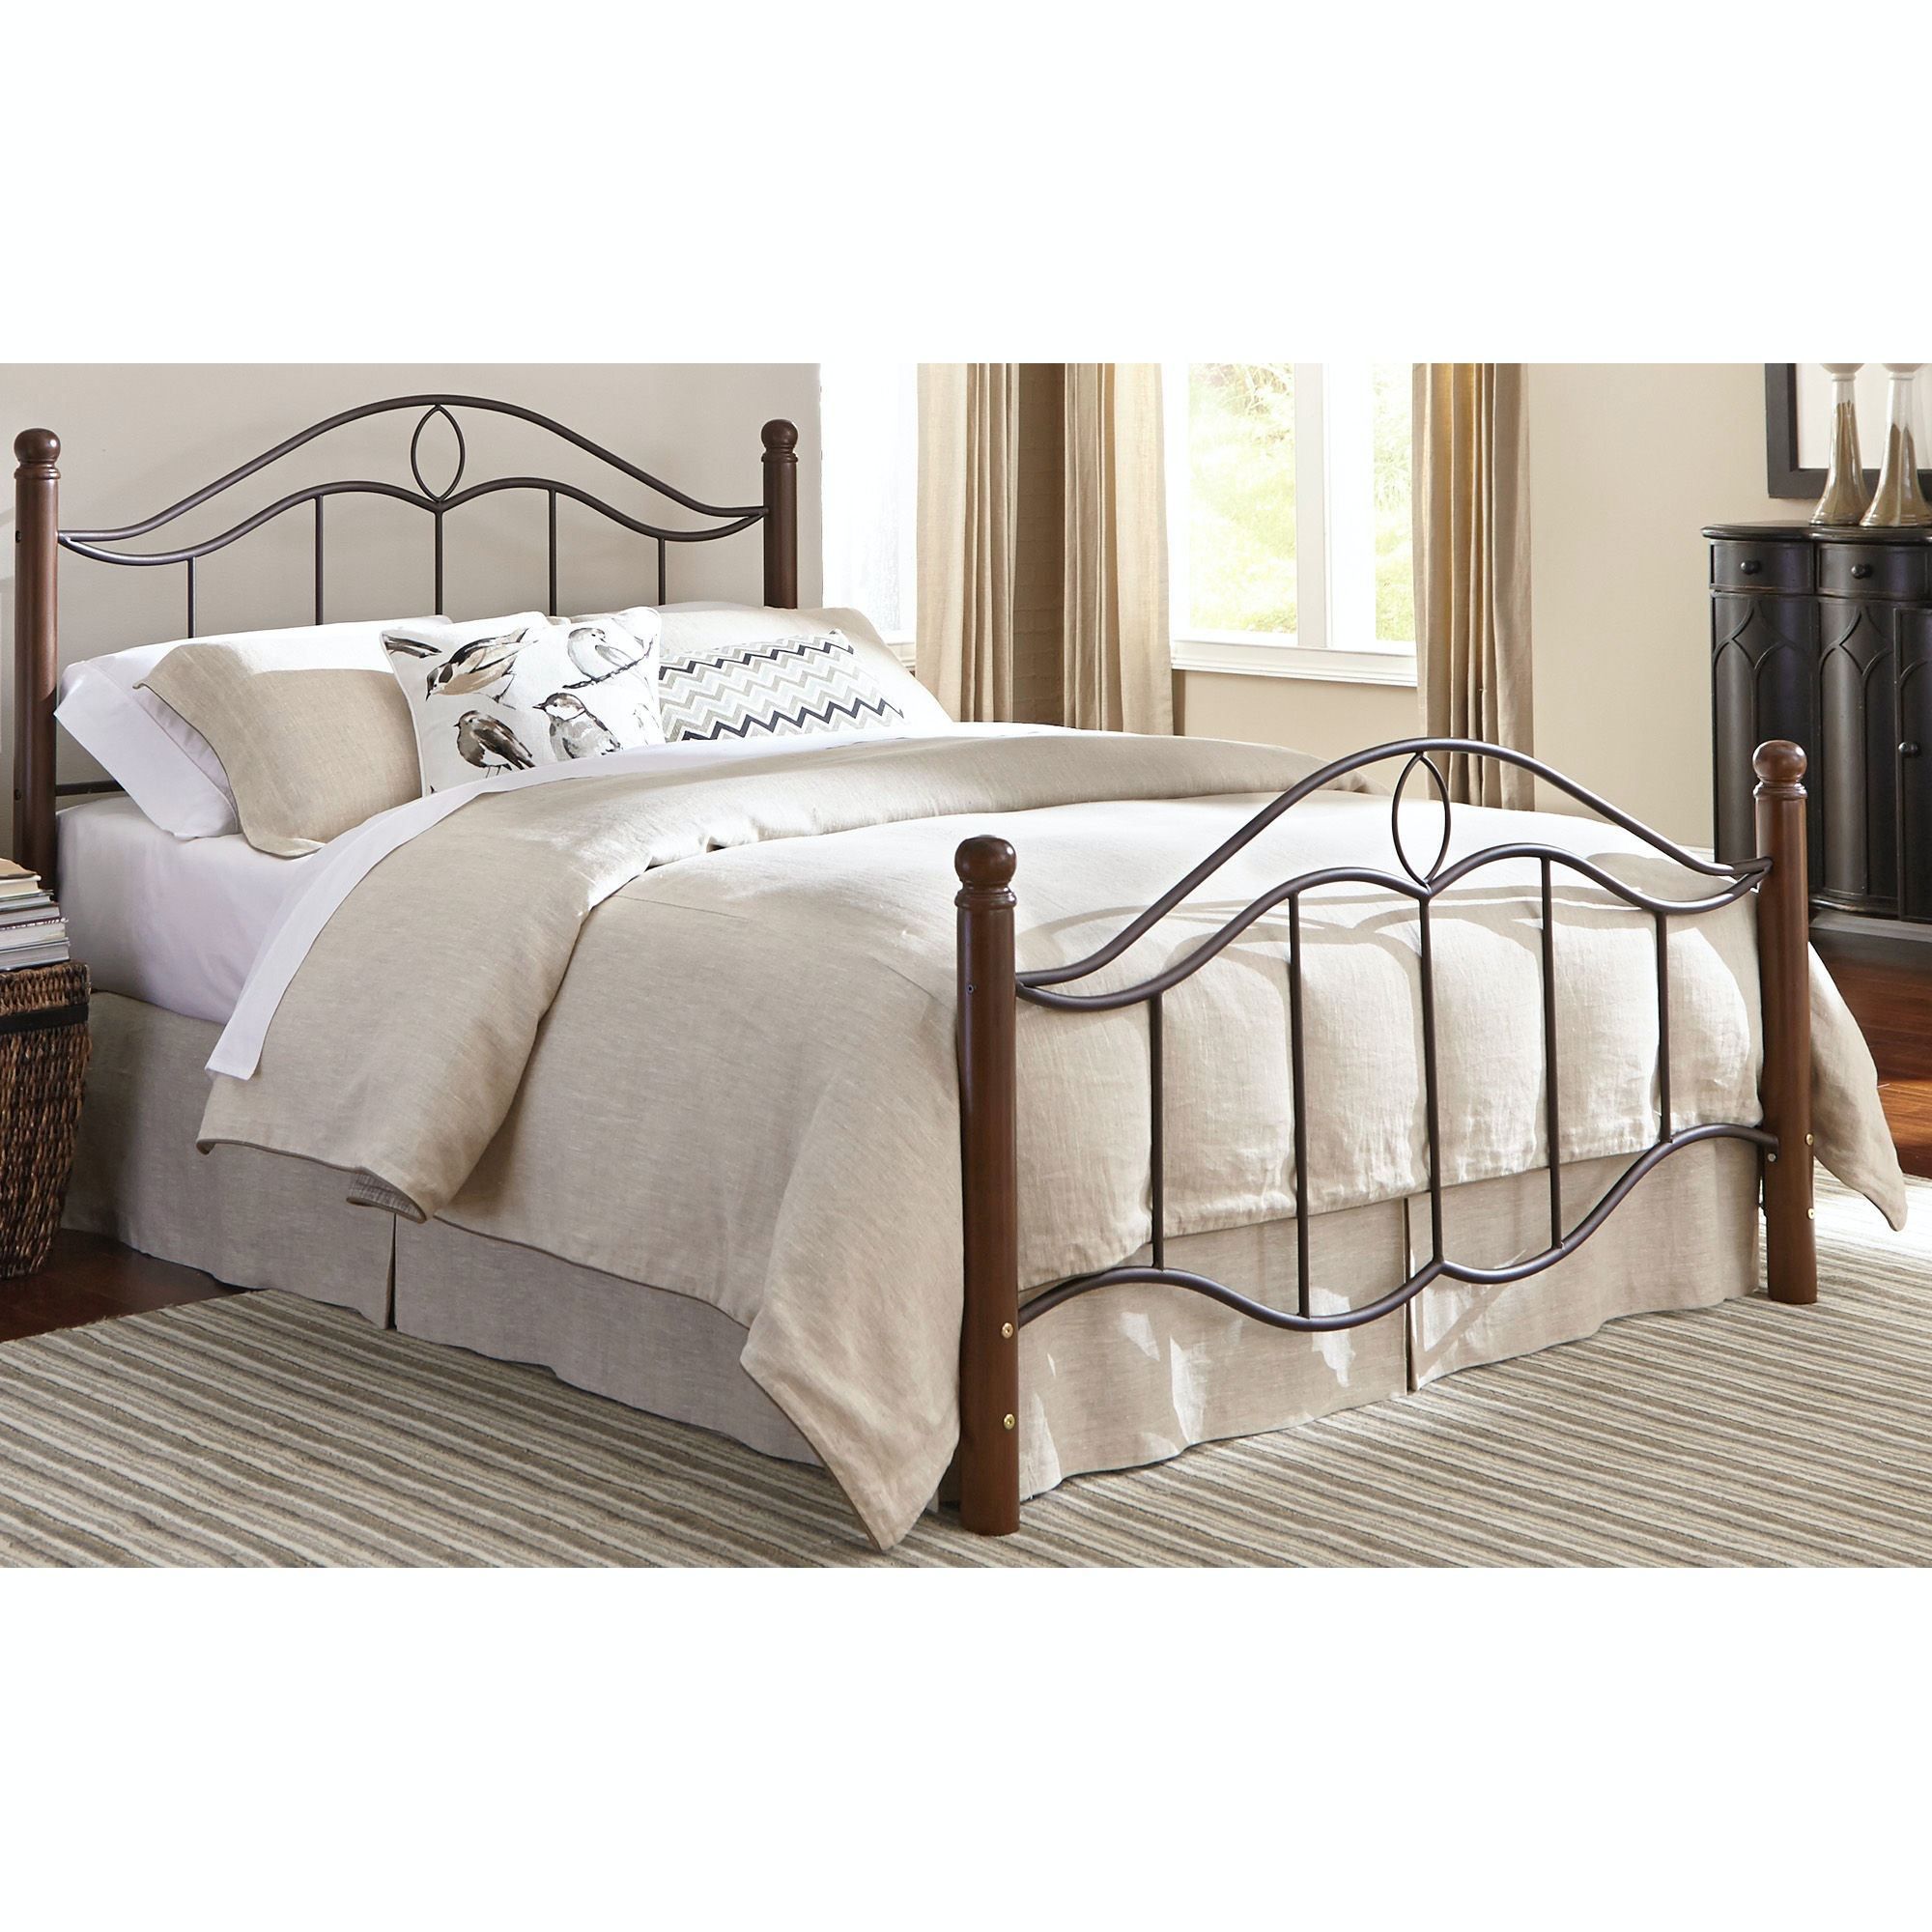 King Bed With Posts Fashion Bed Group Bedroom Cassidy Complete Bed With Metal Duo